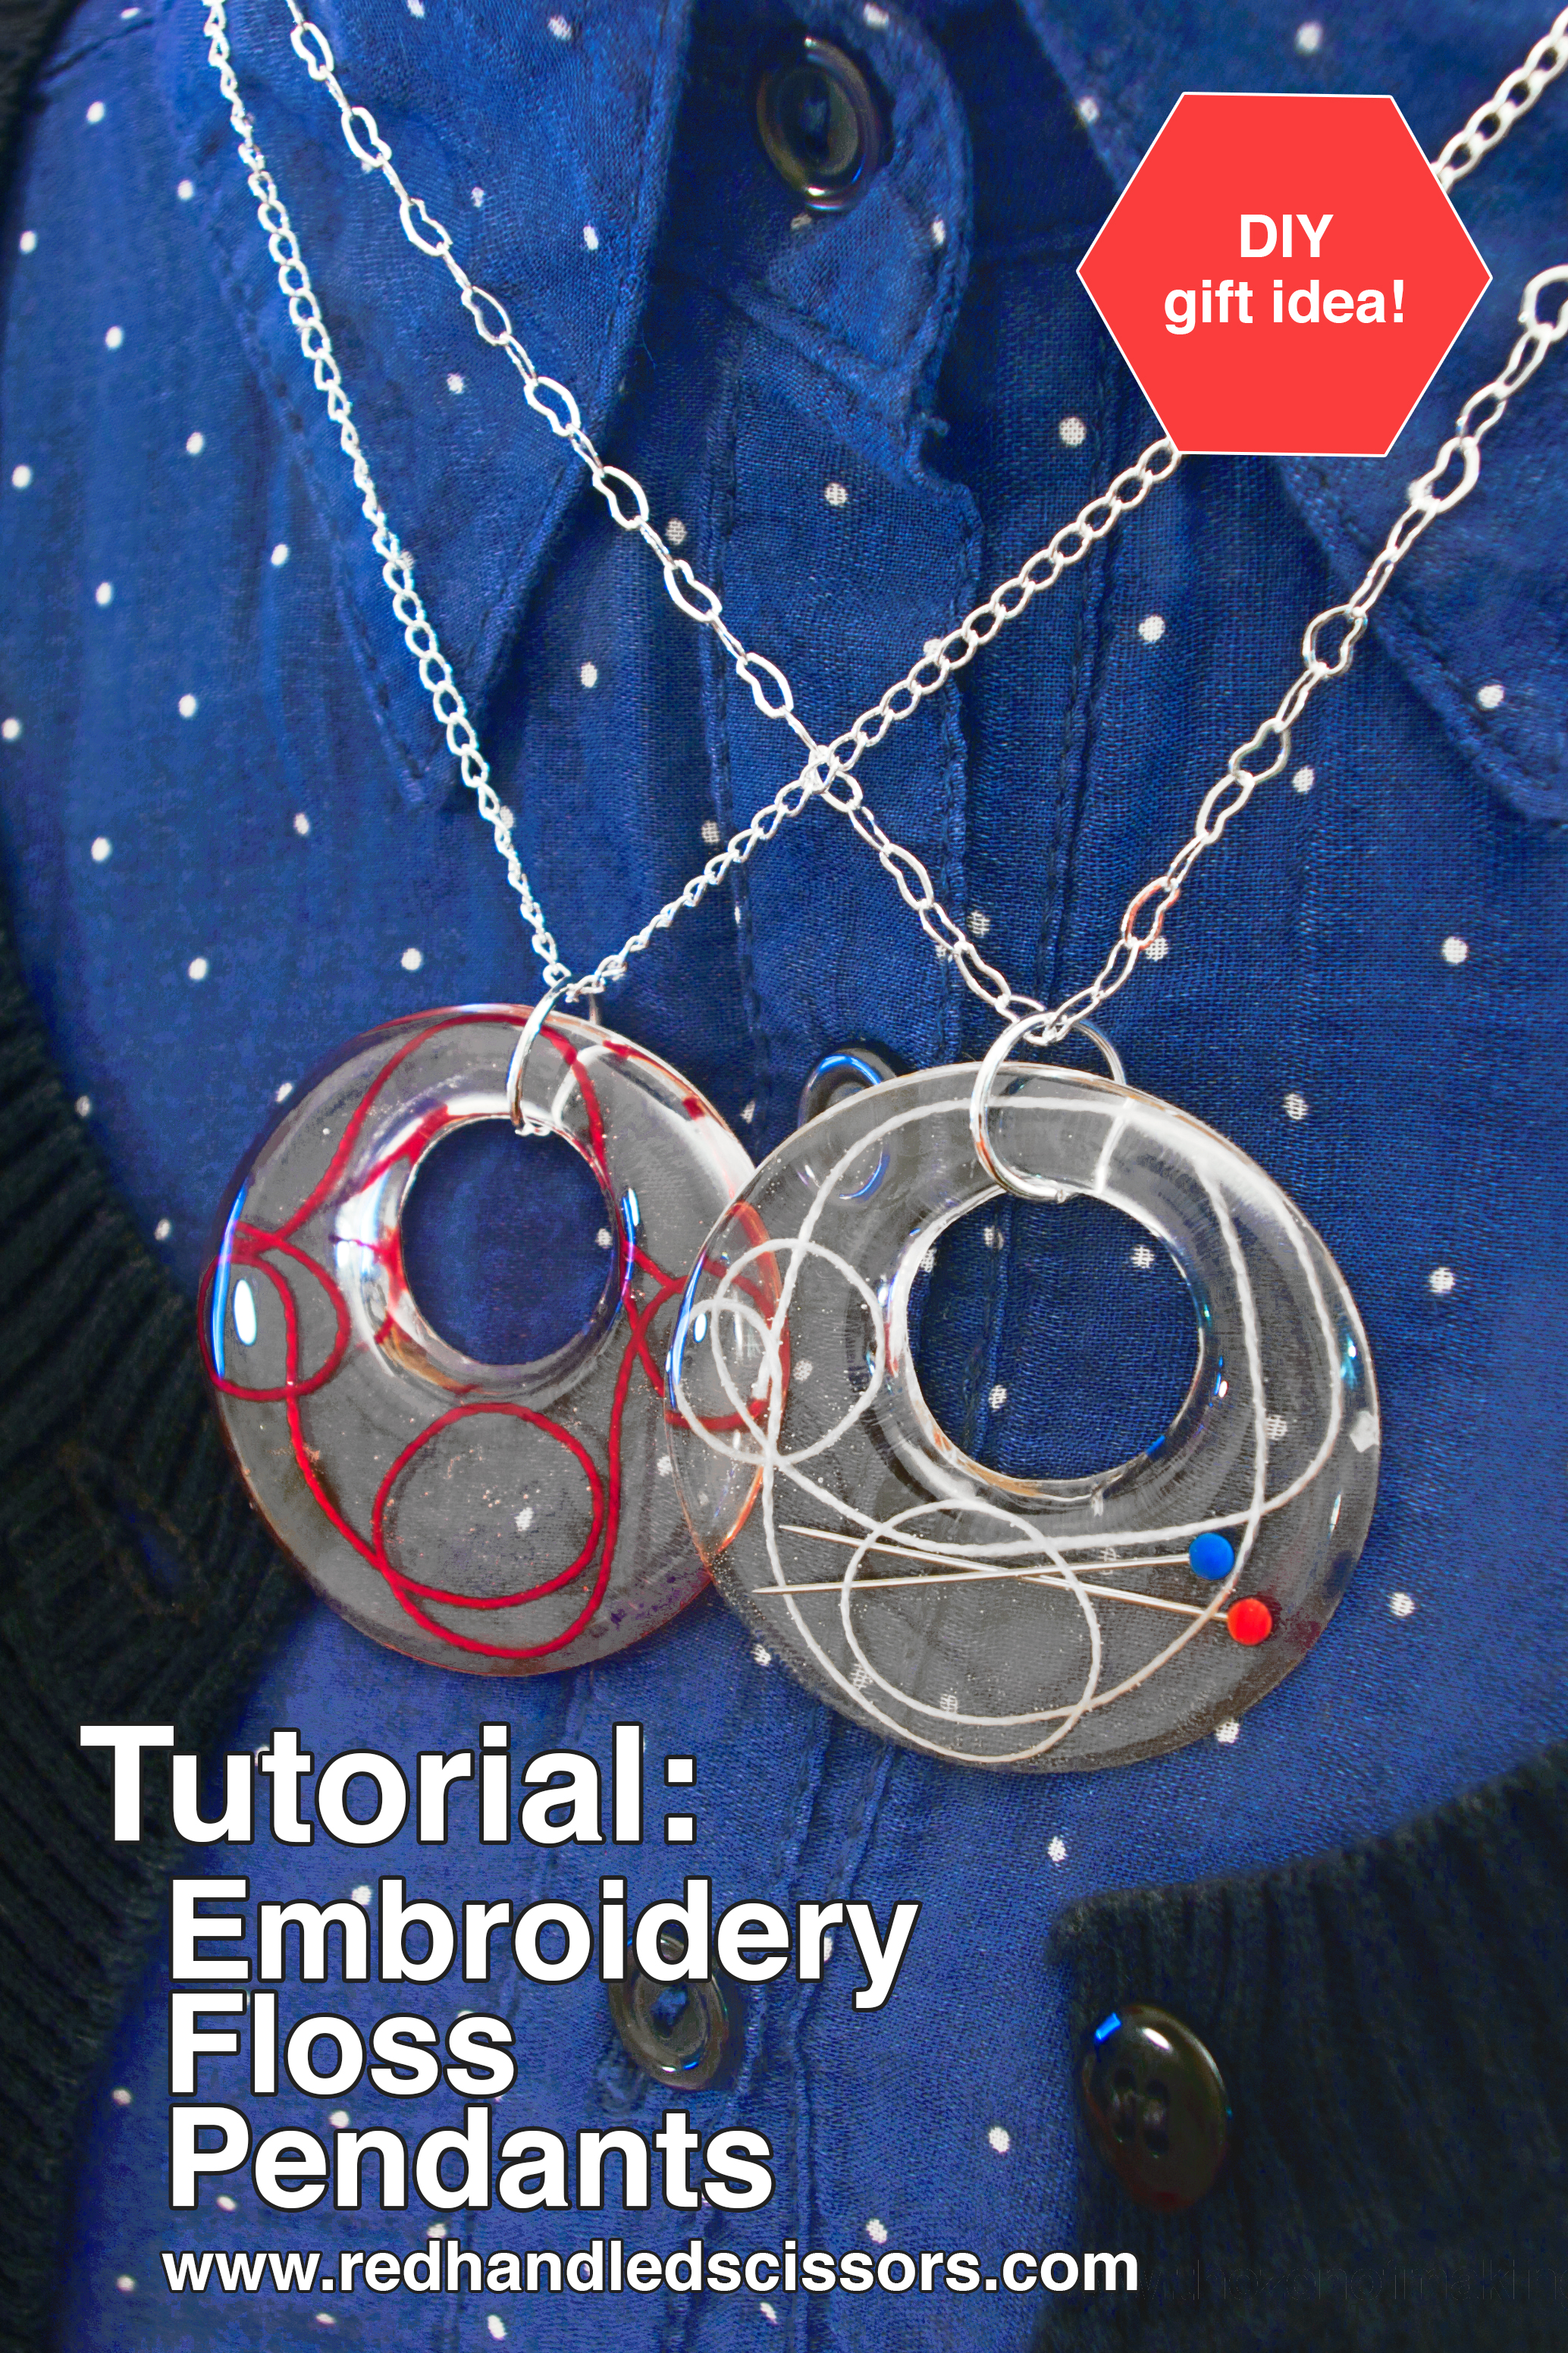 Tutorial resin sewing thread and embroidery floss pendants tutorial resin sewing thread and embroidery floss pendants cant bring yourself to solutioingenieria